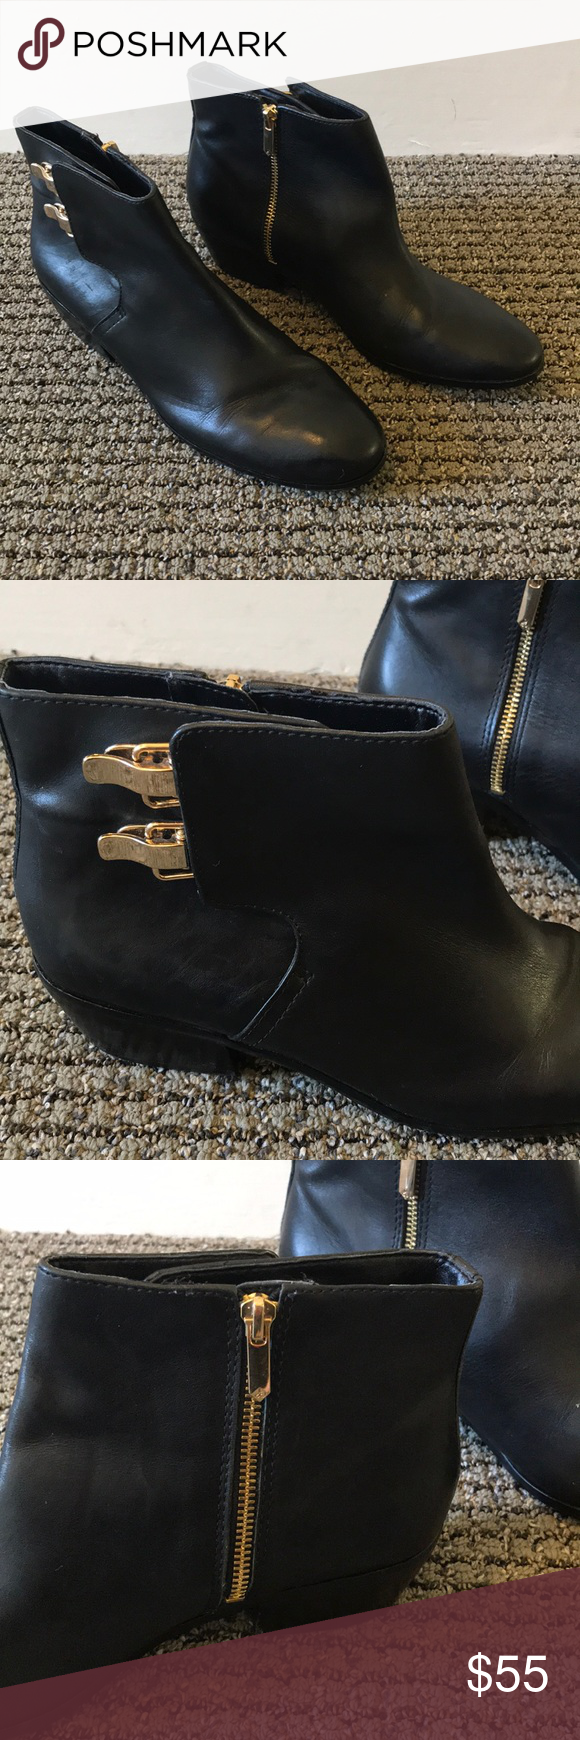 1ef9a245f Steve Edelman Booties! Gently loved Steve Edelman black soft leather  booties with classy gold buckles and zippers. Some minor signs of wear (see  photos).